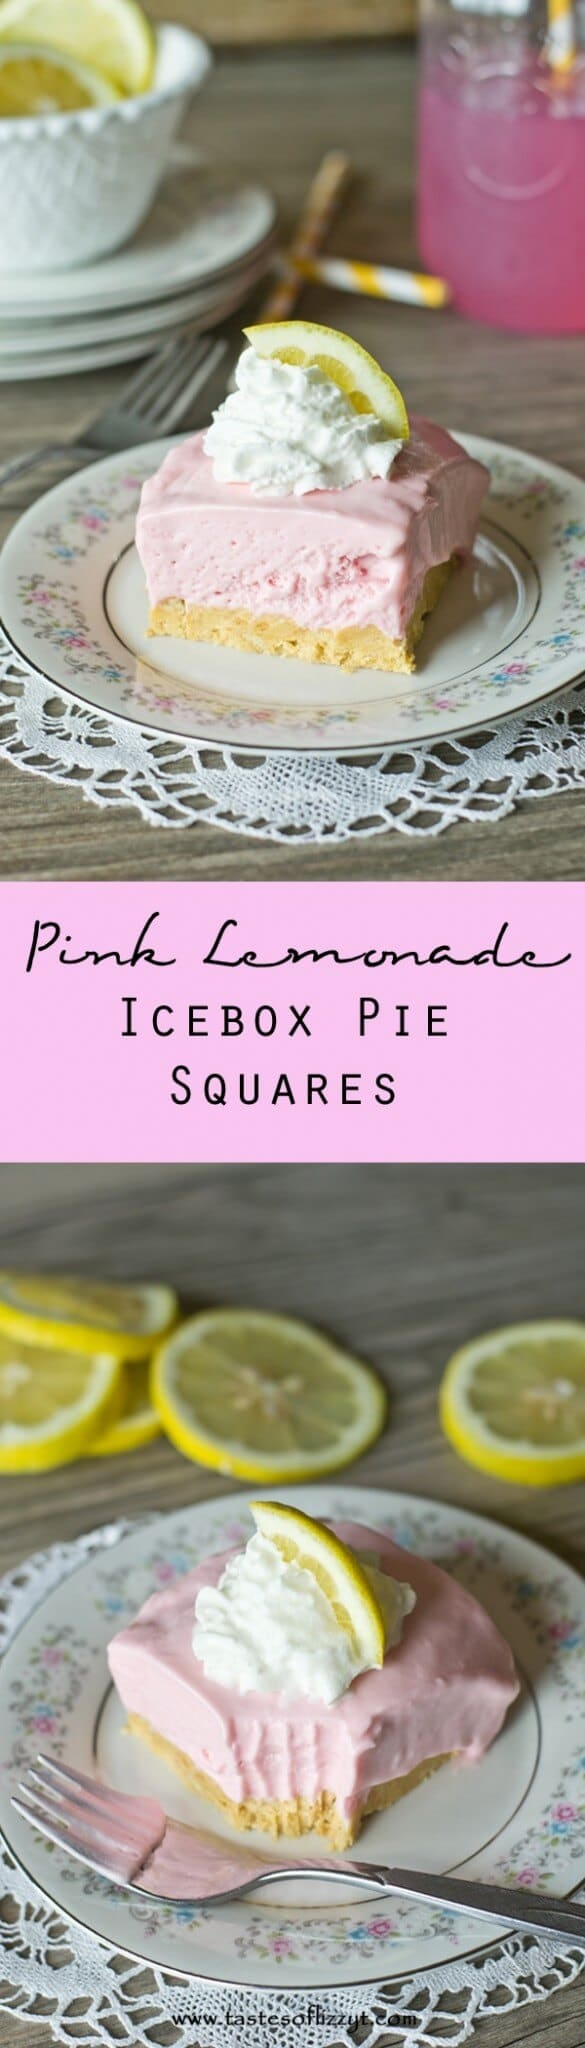 This no-bake Pink Lemonade Icebox Pie Squares are cool, light and refreshing.